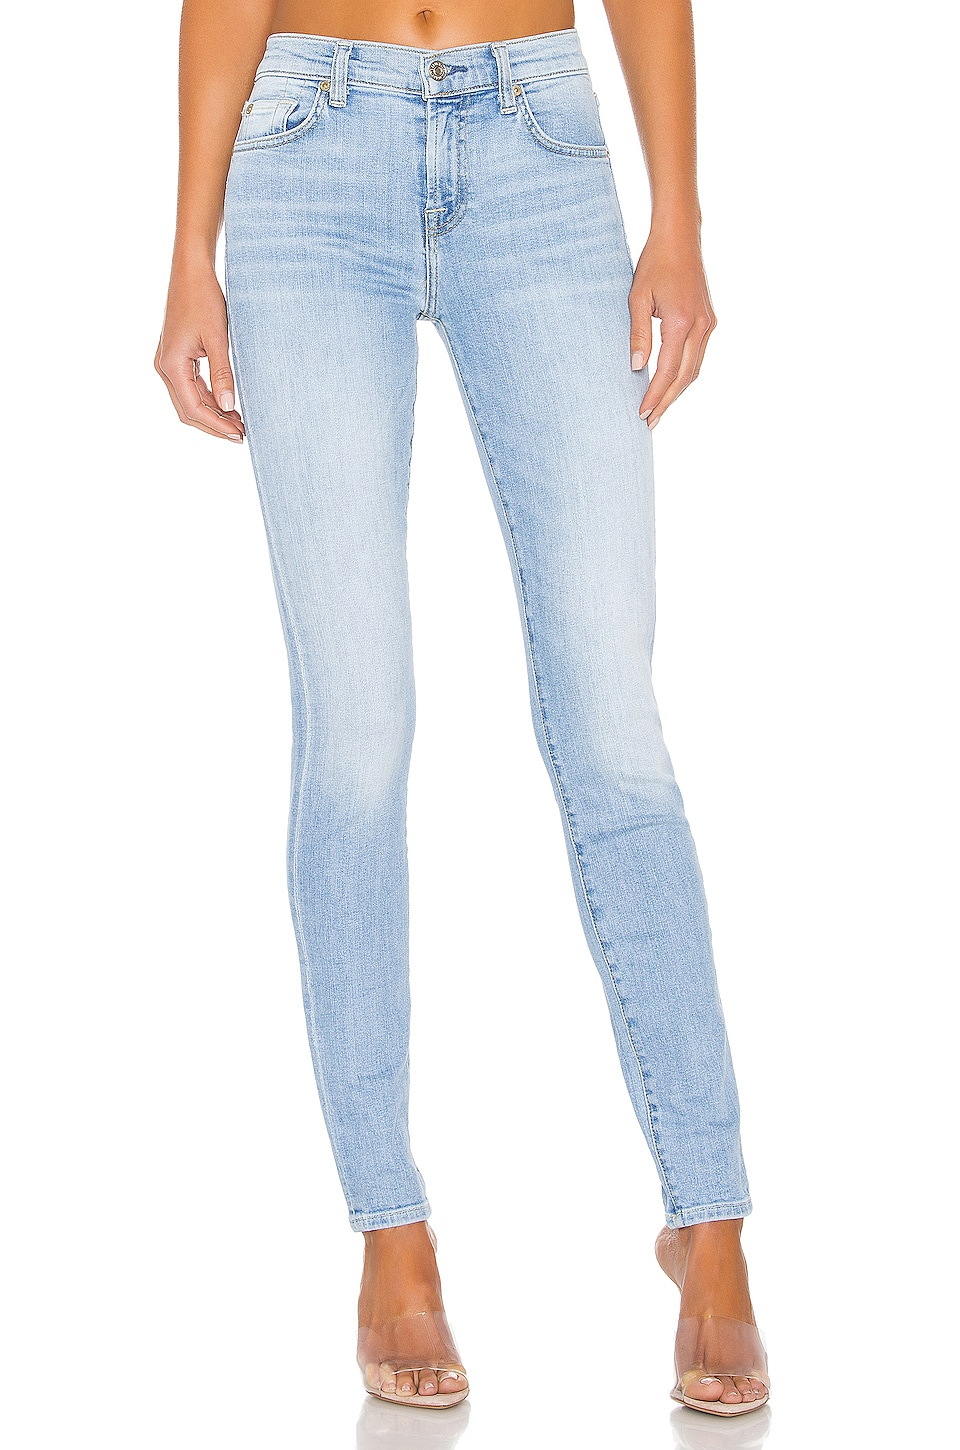 7 For All Mankind JEAN SKINNY THE SKINNY